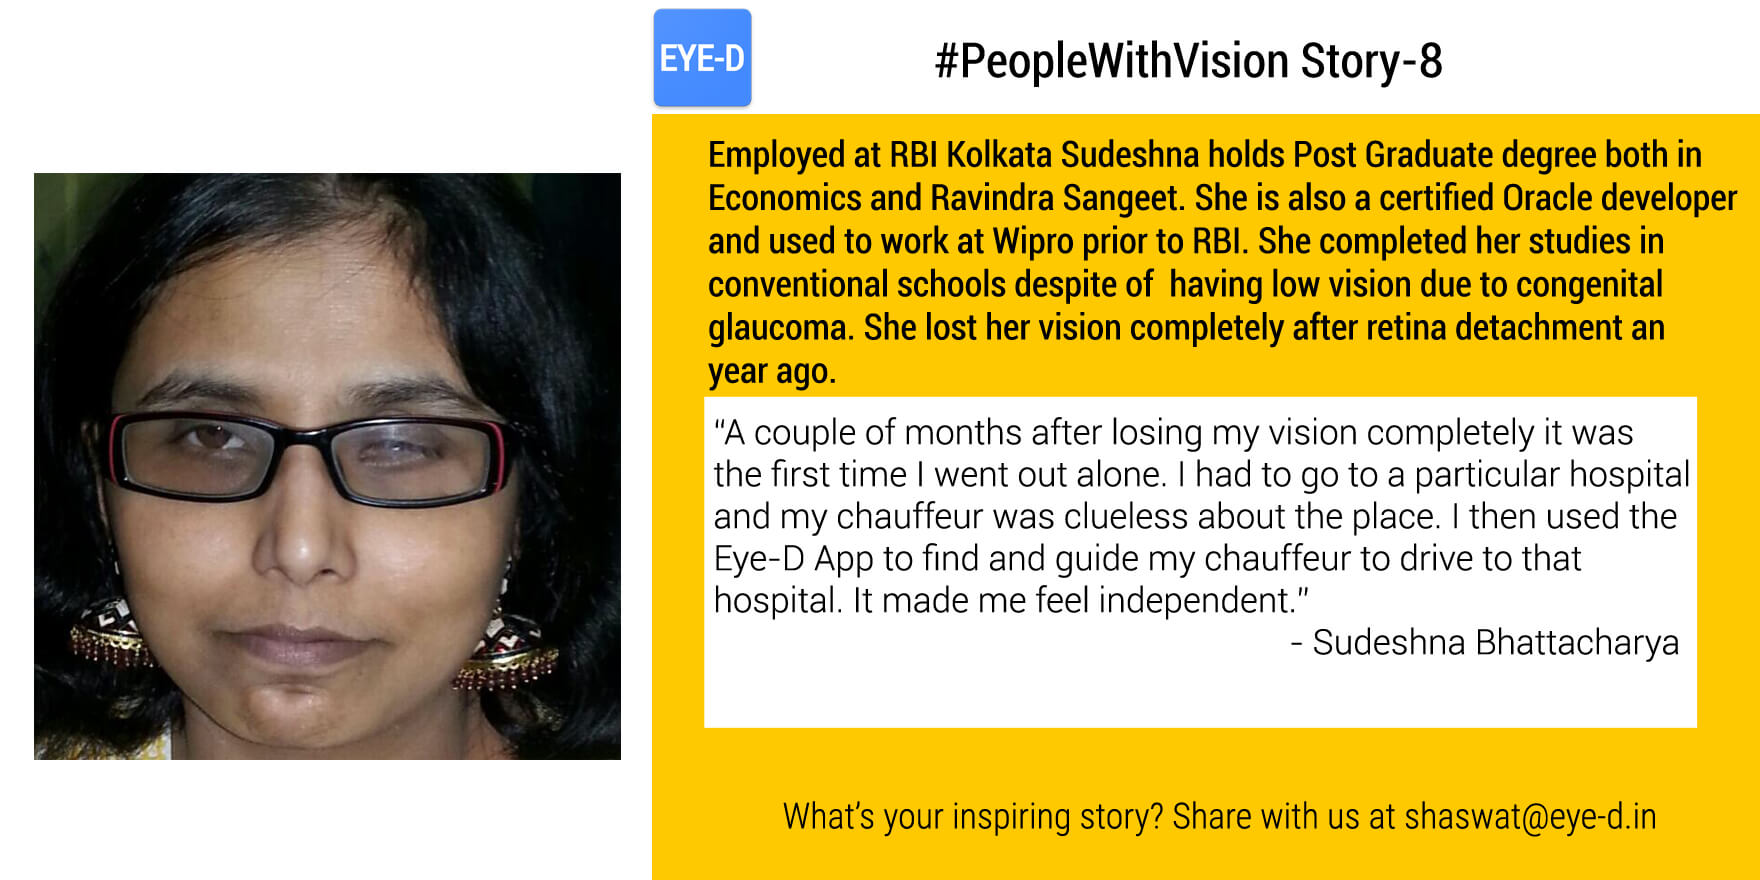 Sudeshna's People with vision story talks about how Sudeshna established herself at RBI Kolkatta despite challenges. The story also captures her maiden experience of travelling alone with help of Eye-D